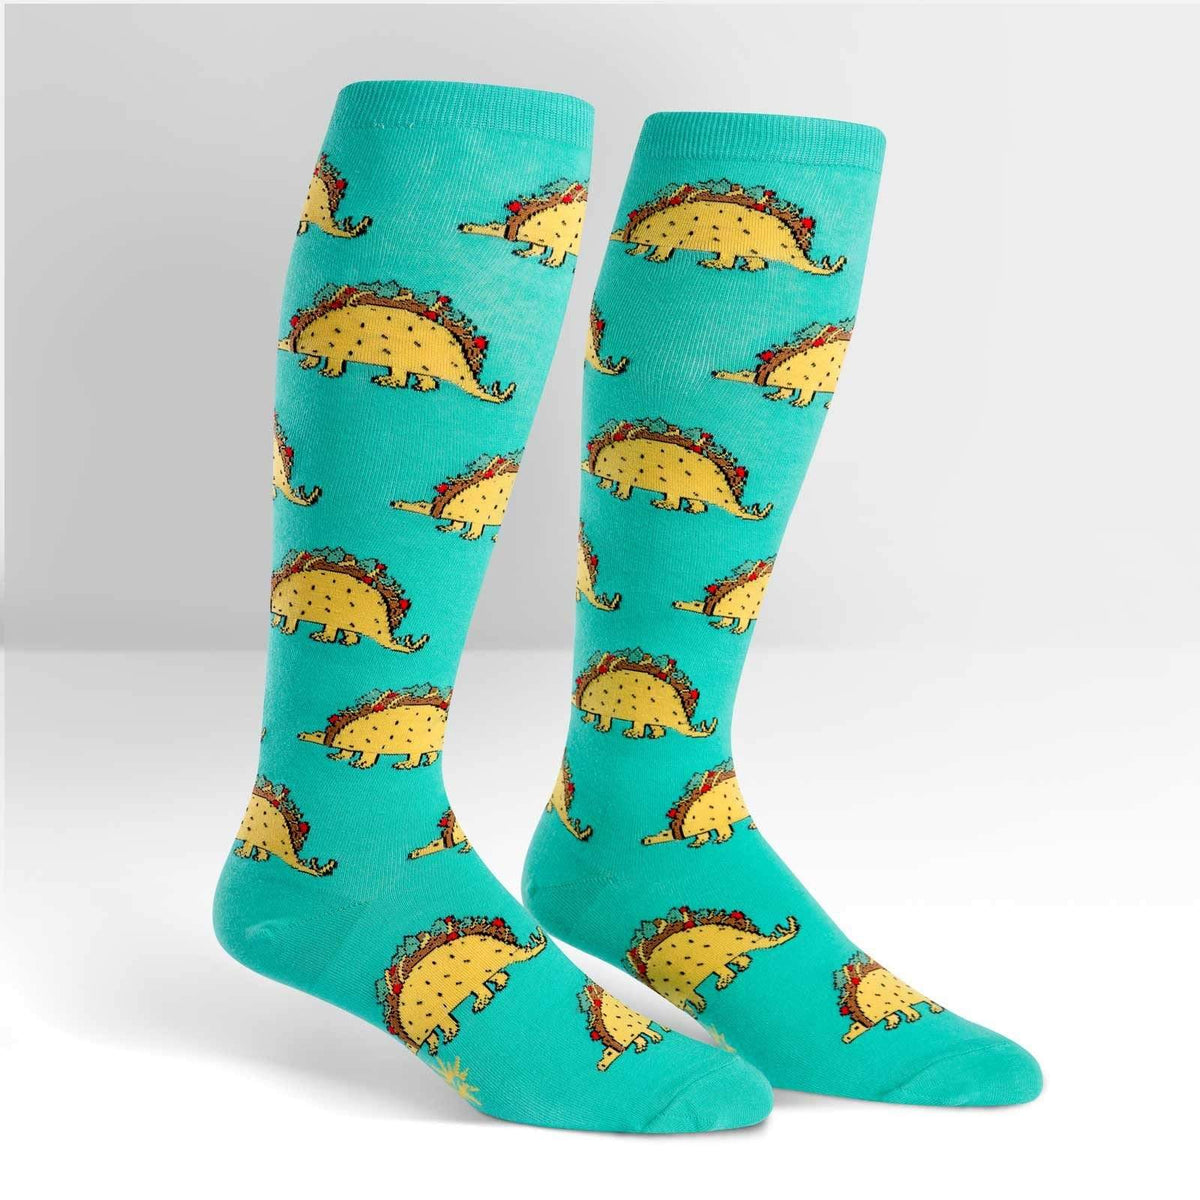 Taco-Saurus Socks - Knee High